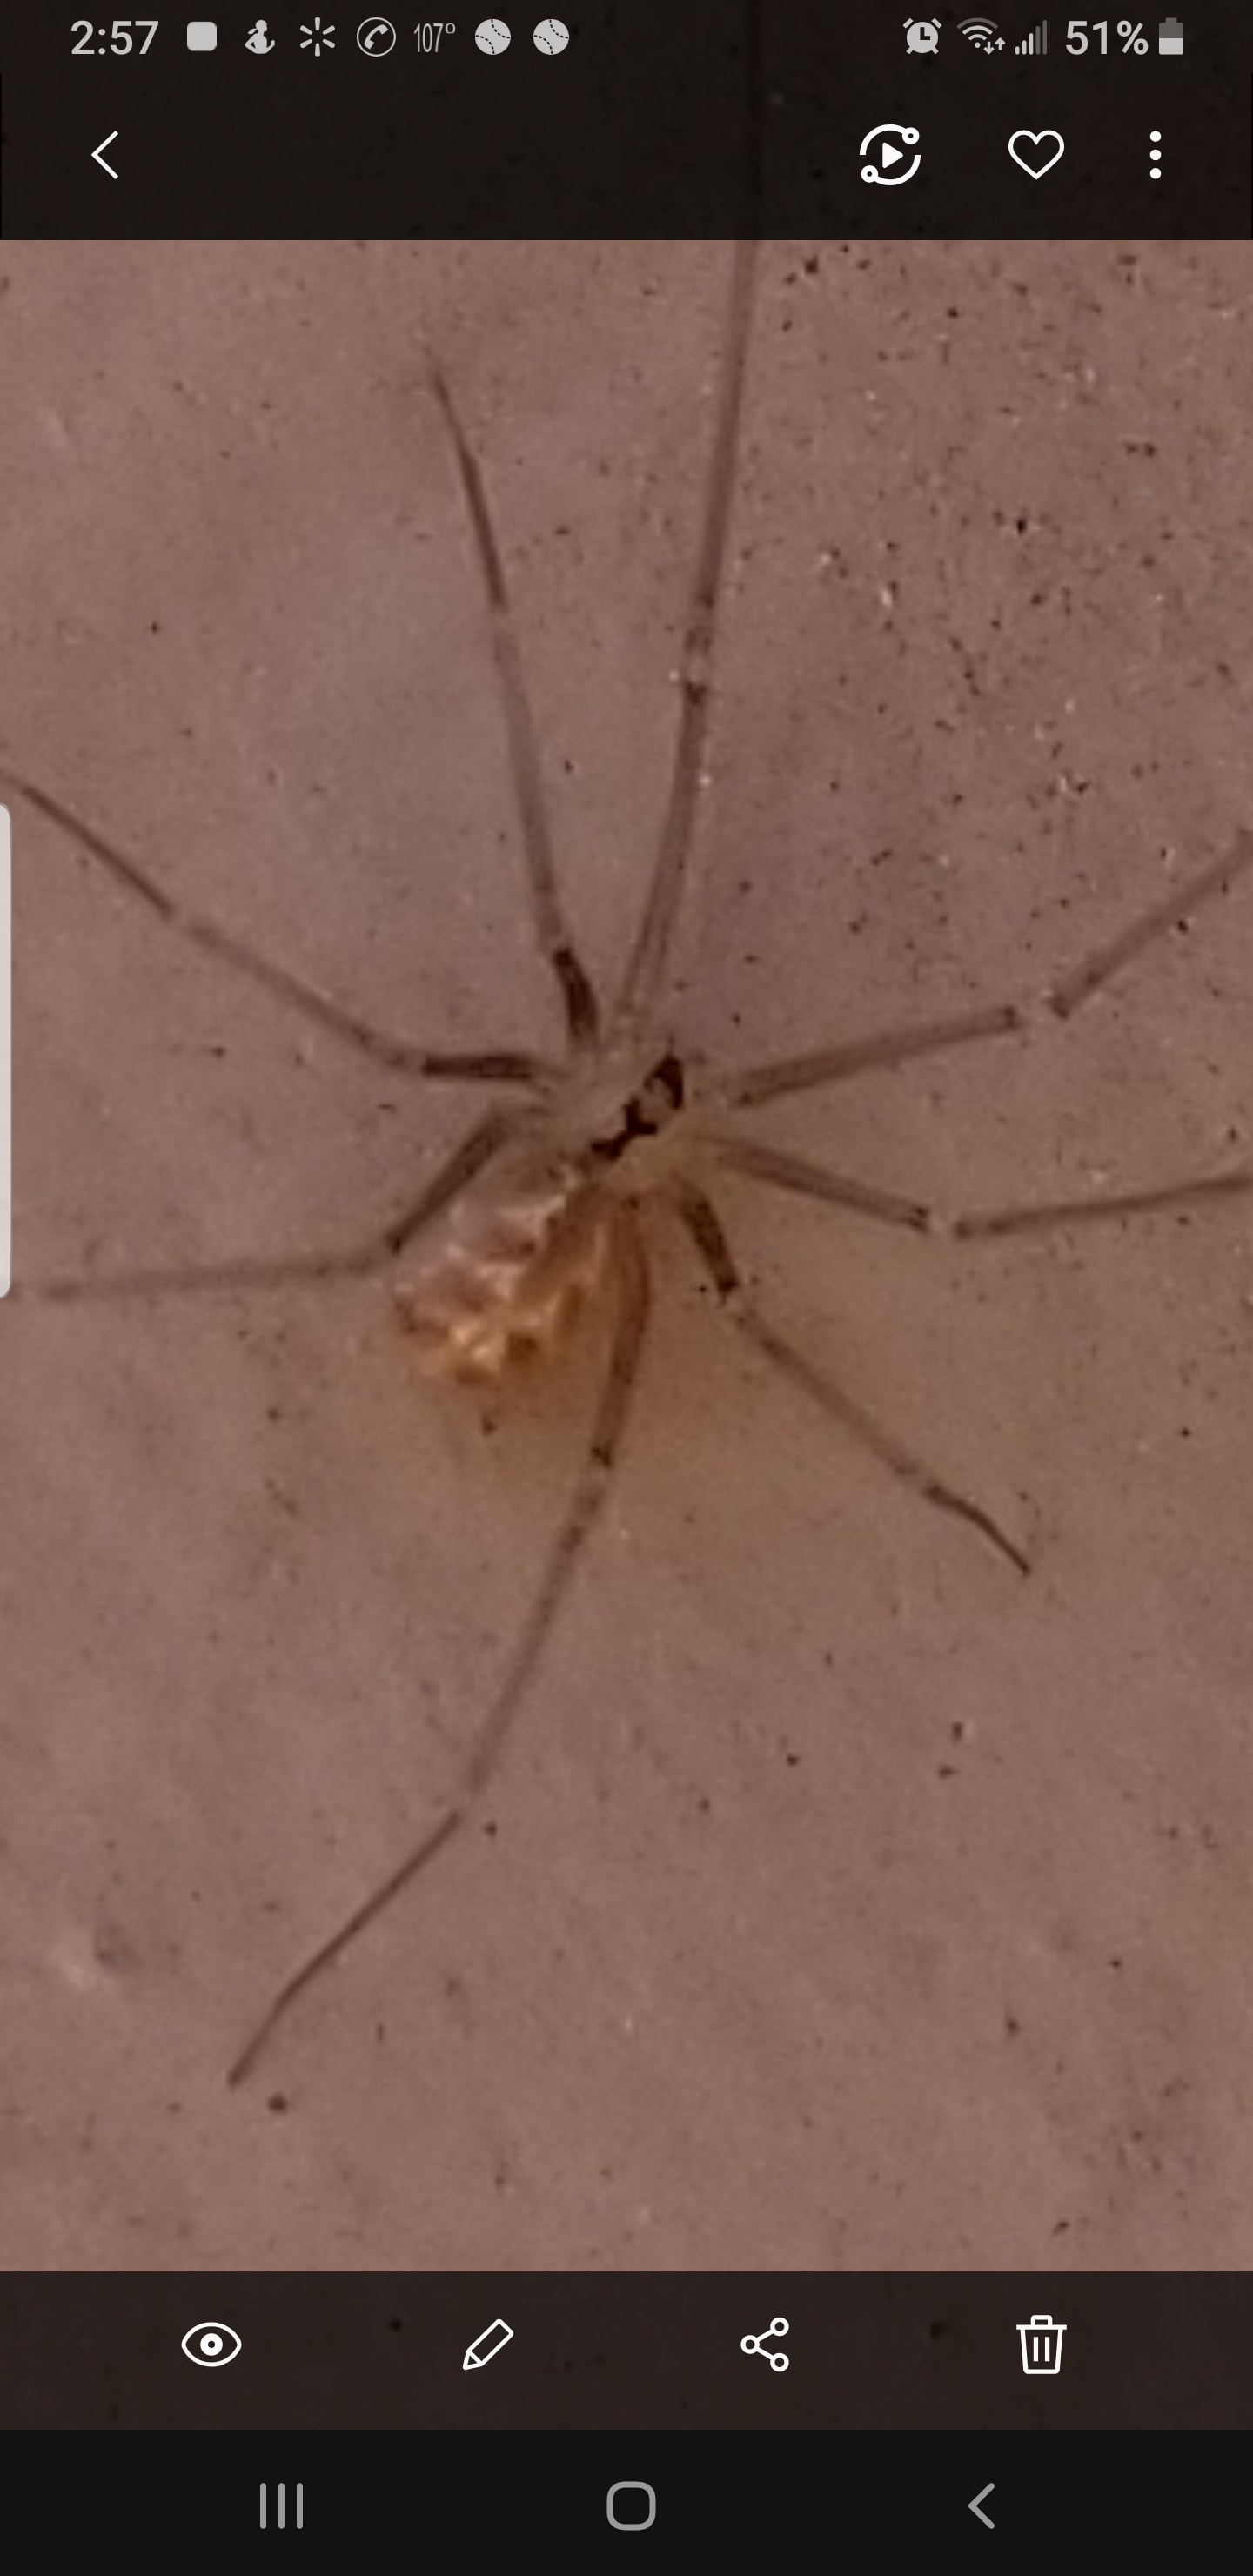 Picture of Pholcidae (Cellar Spiders) - Dorsal